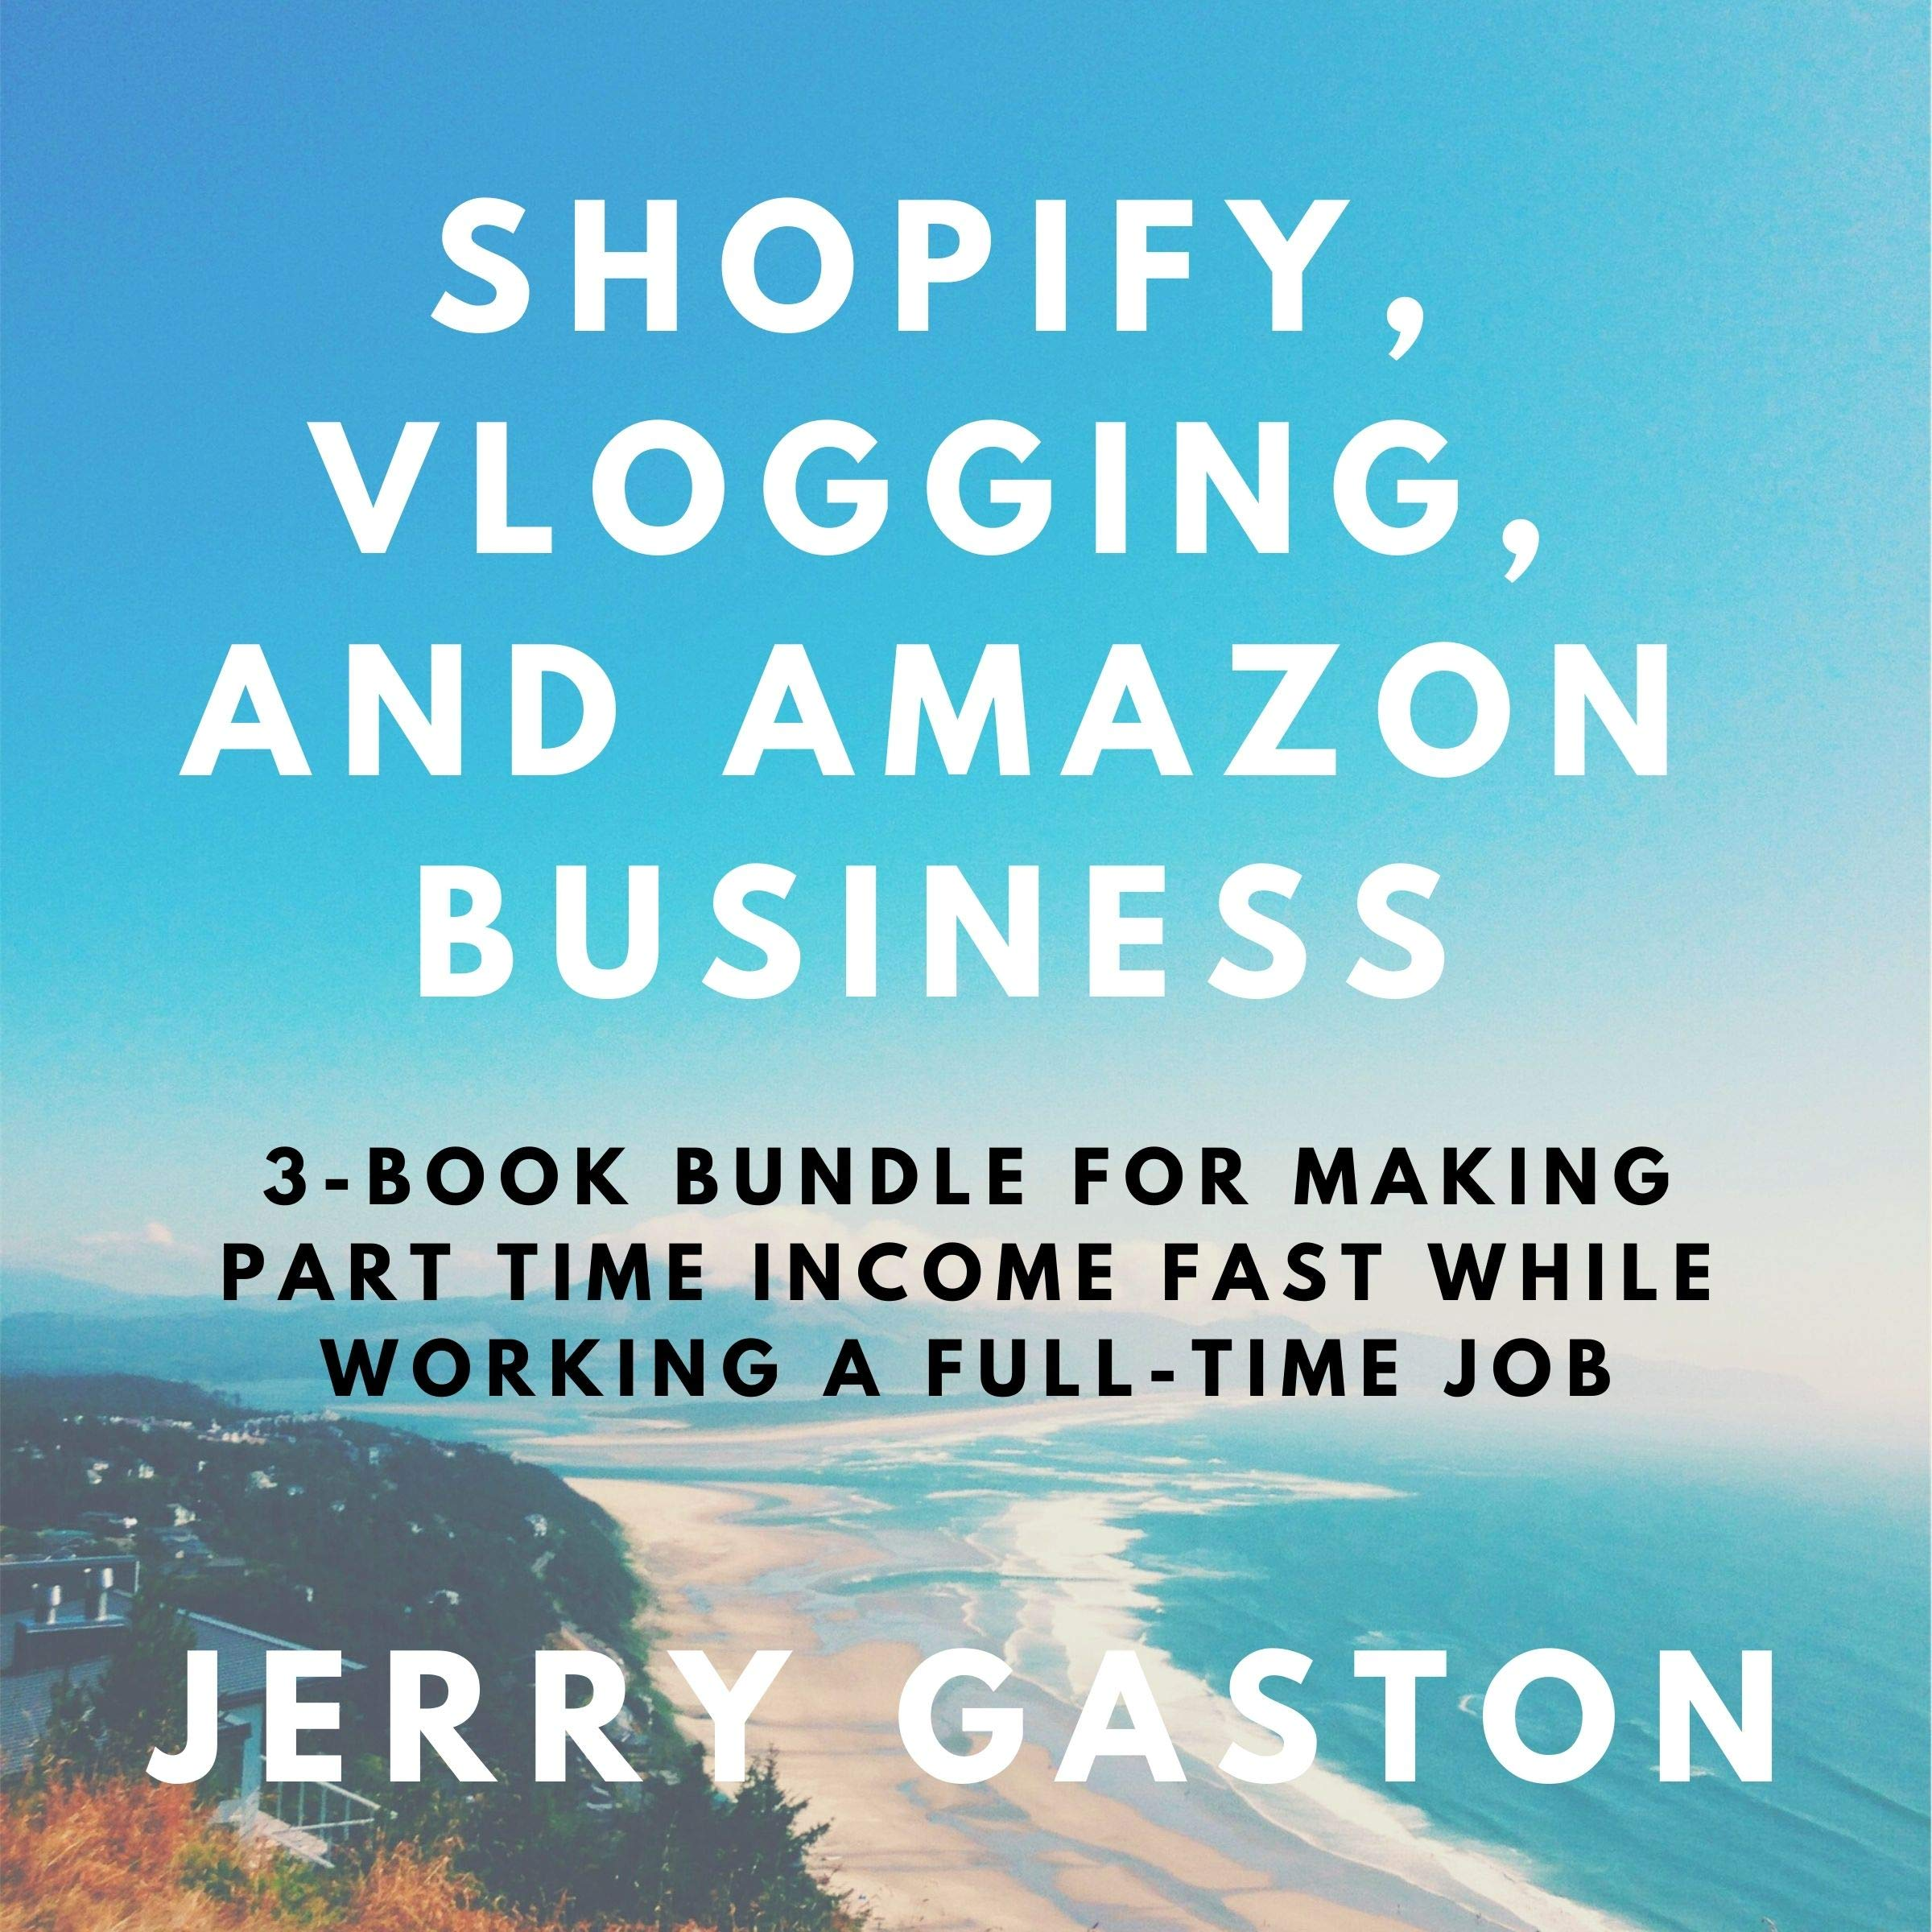 Shopify, Vlogging, and Amazon Business: 3-Book Bundle for Making Part Time Income Fast While Working a Full-Time Job